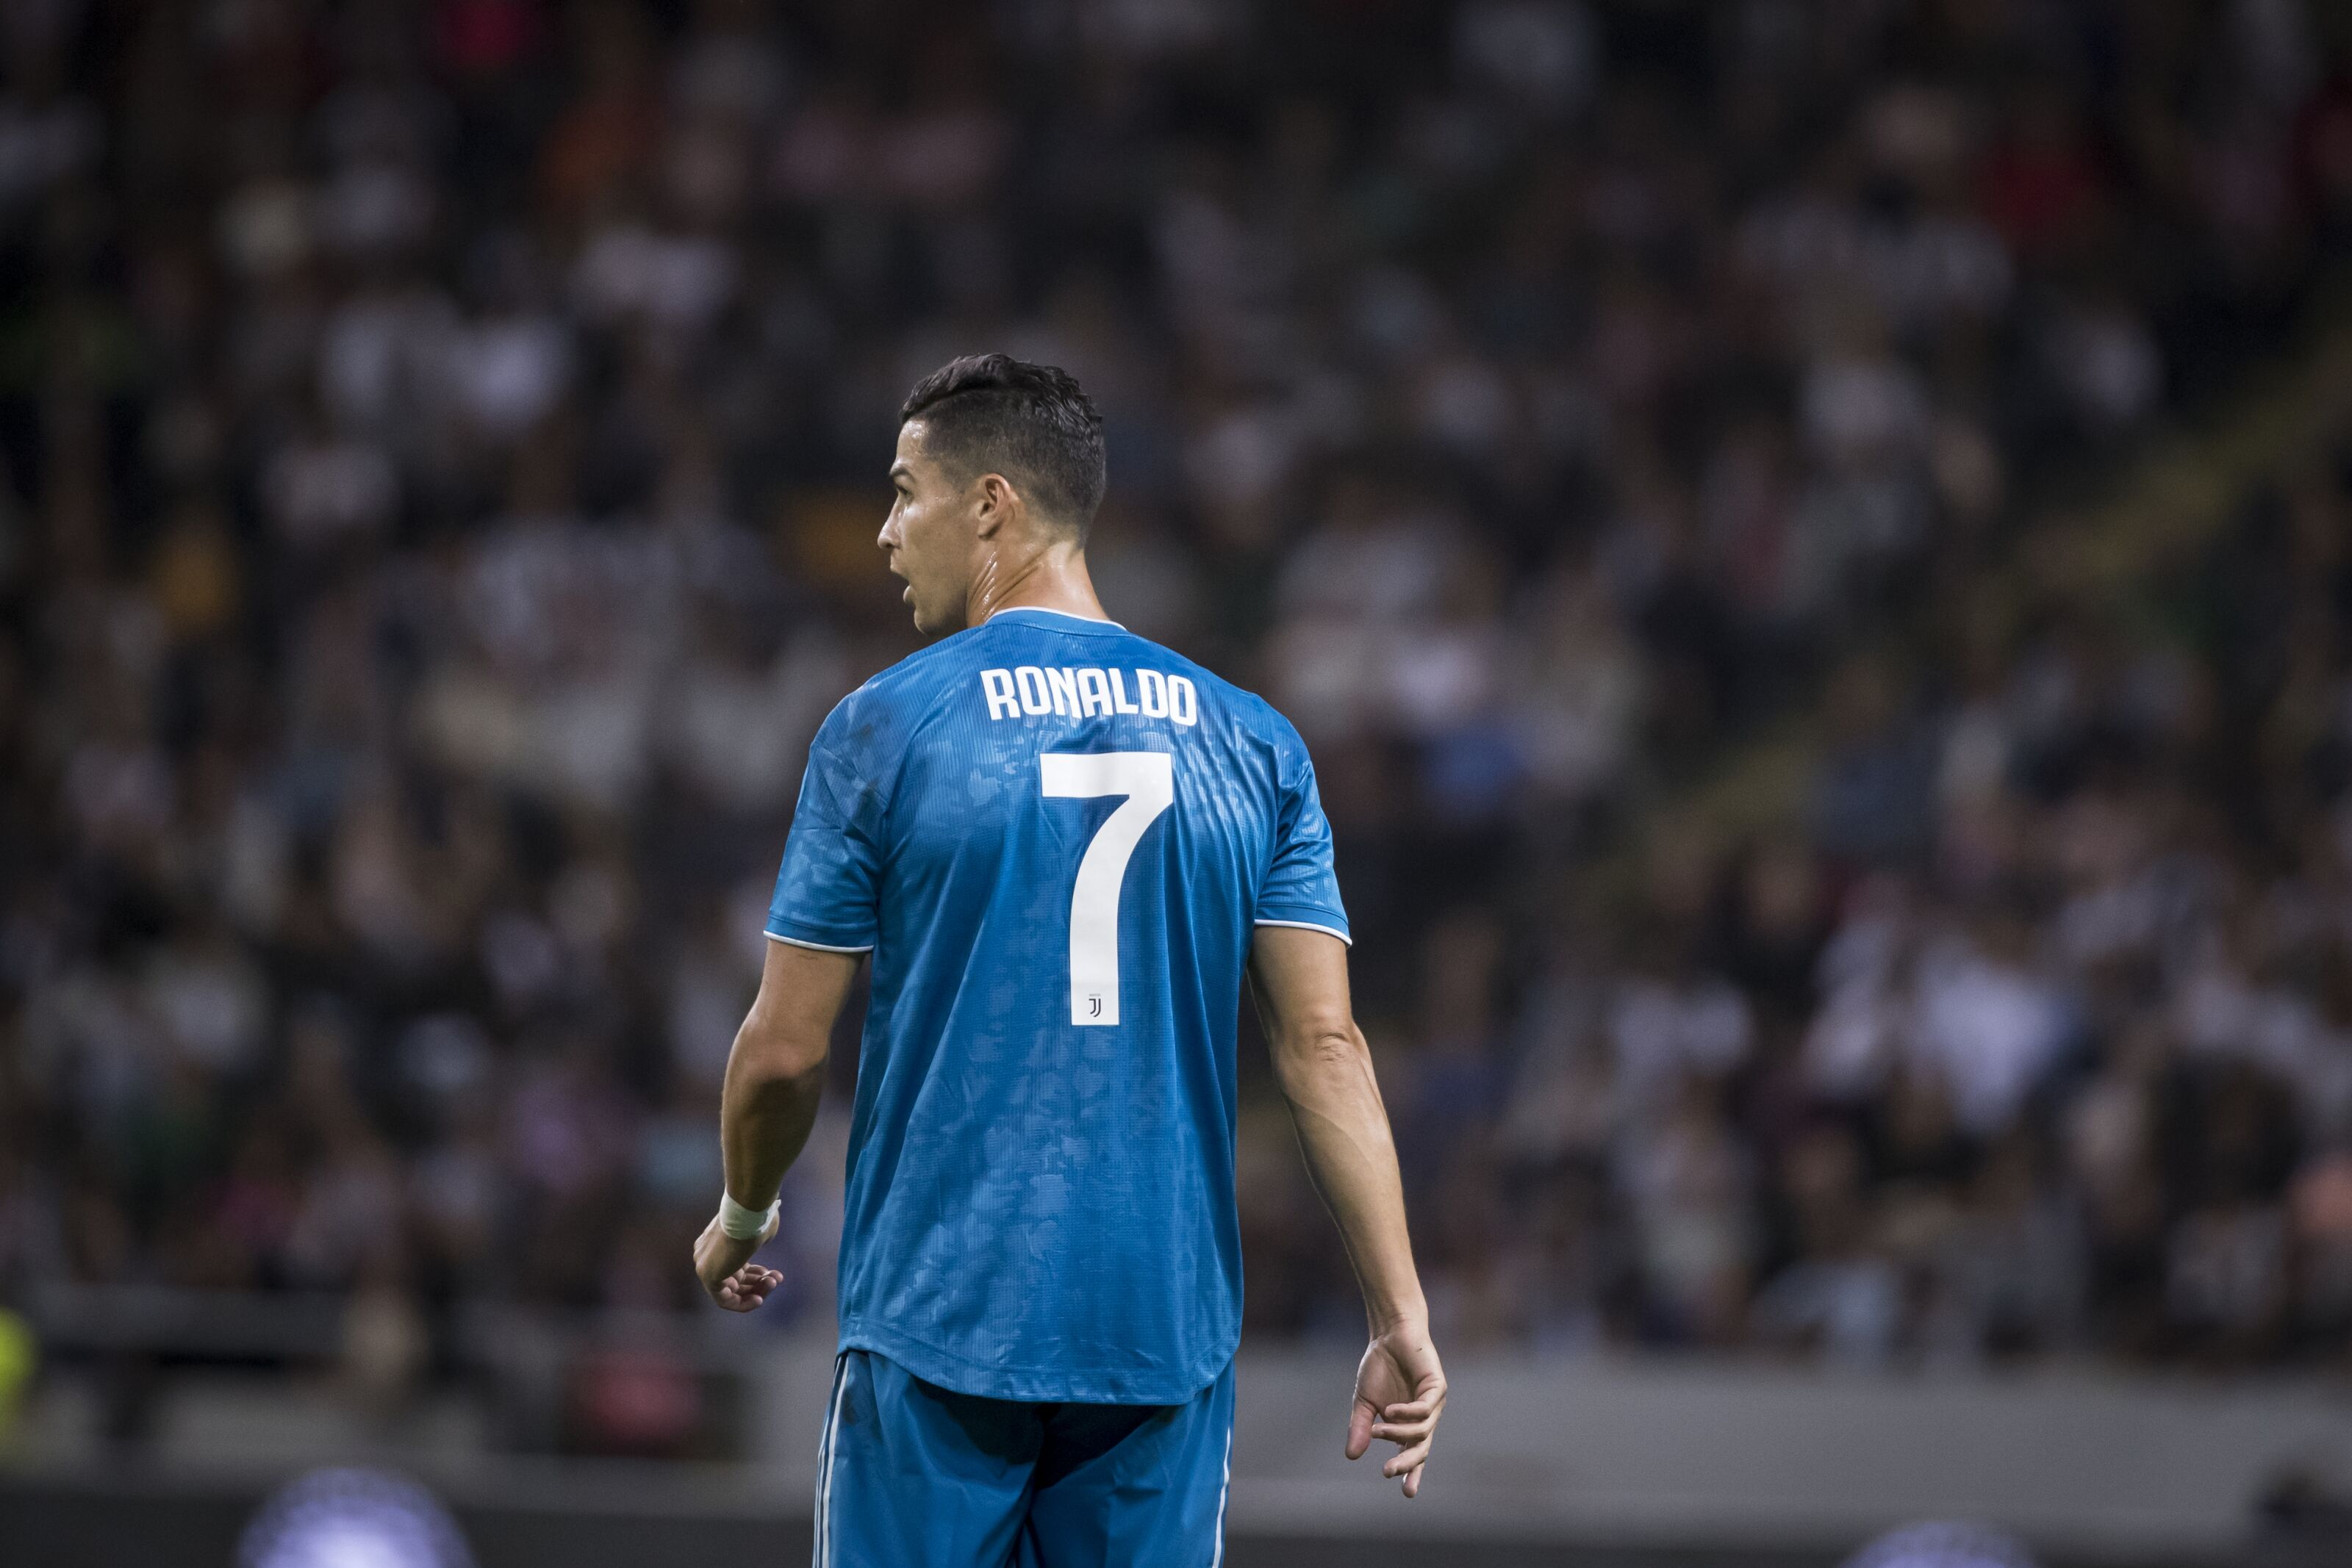 Real Madrid superstar wanted by Cristiano Ronaldo at Juventus in January